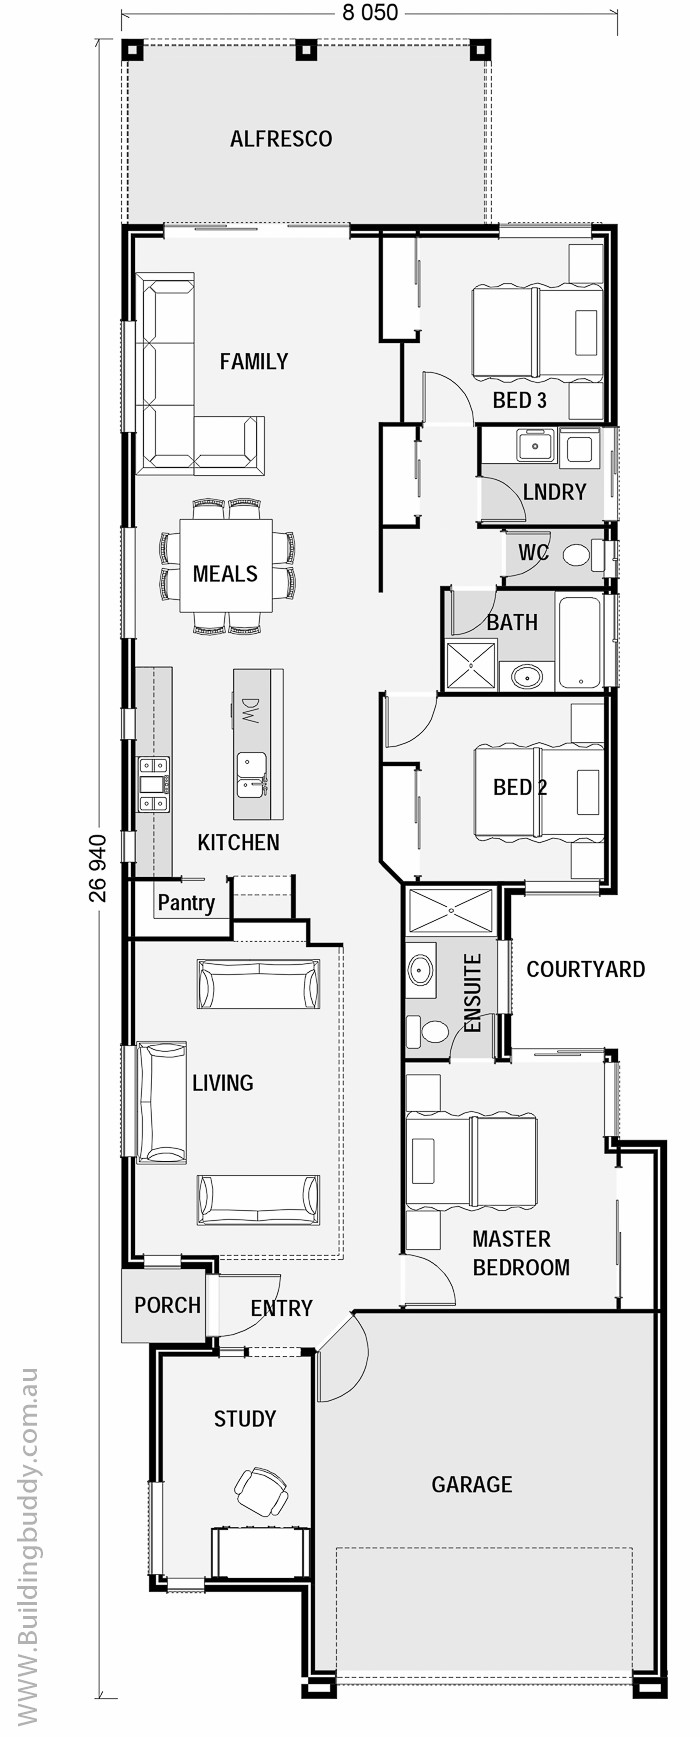 House Plans Home Designs Building Prices Amp Builders